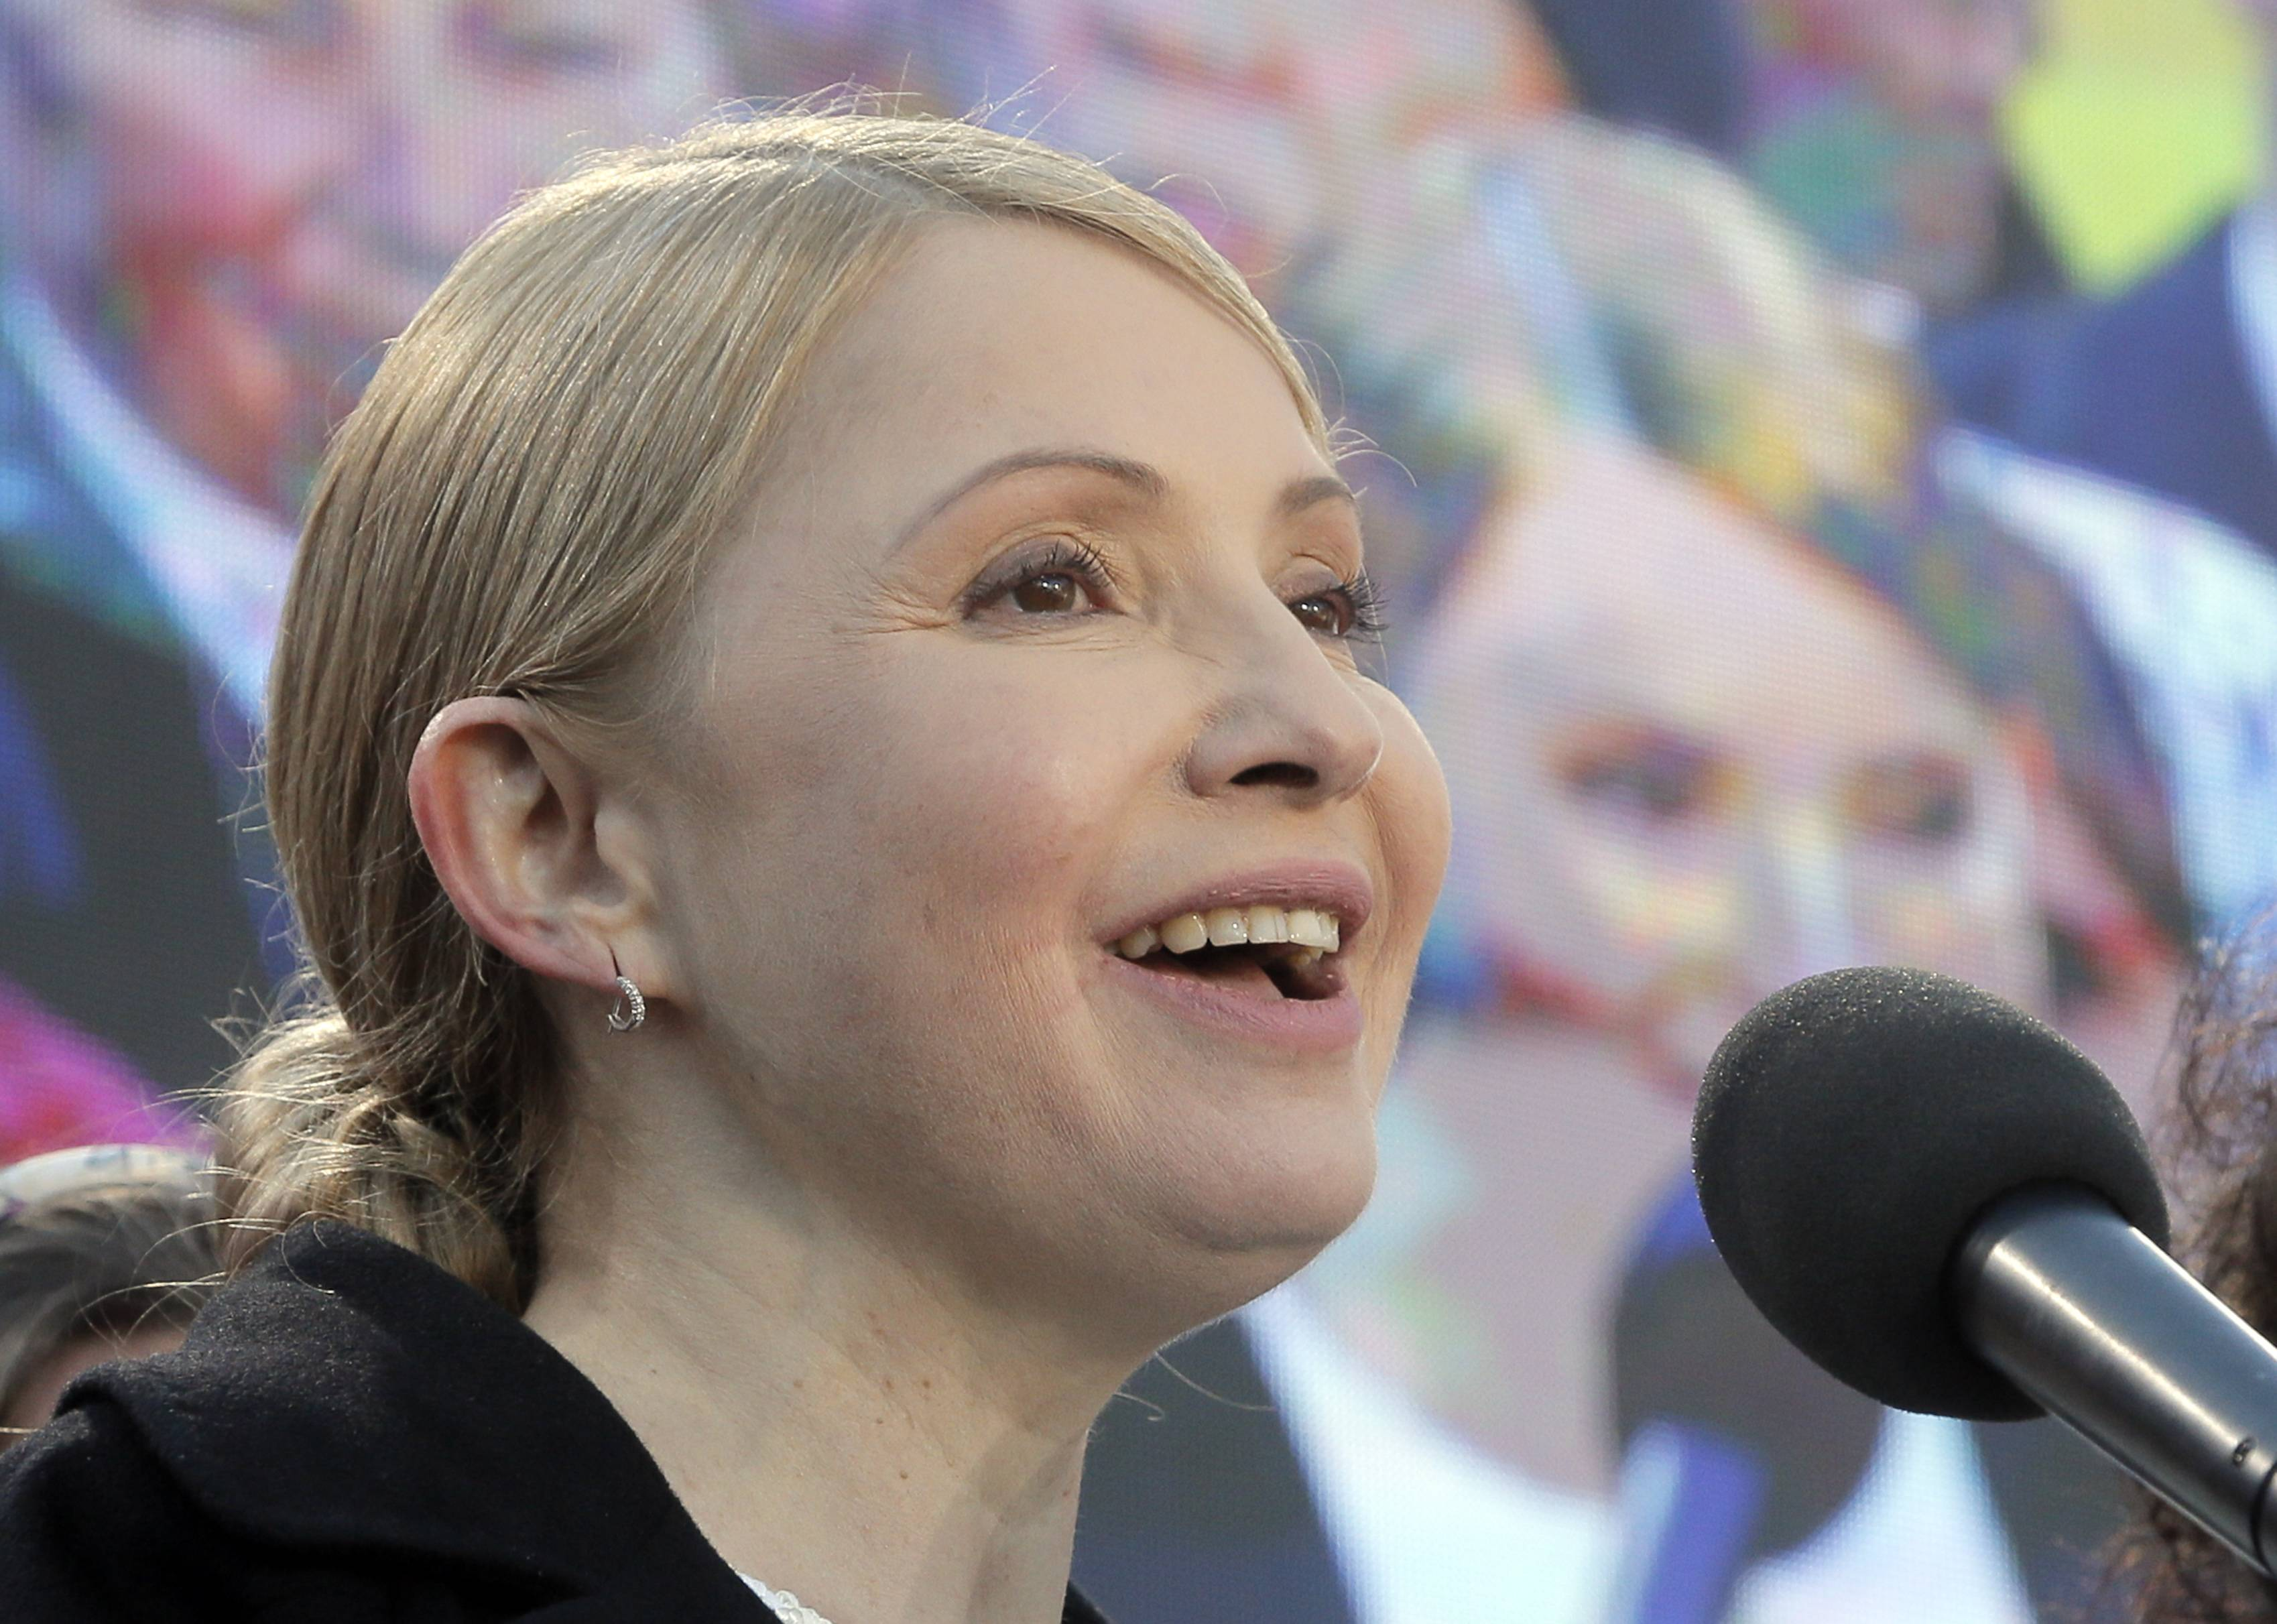 Former Ukrainian Prime Minister Yulia Tymoshenko delivers a speech Saturday during the Batkivshchyna (Fatherland) party congress in Kiev, Ukraine.